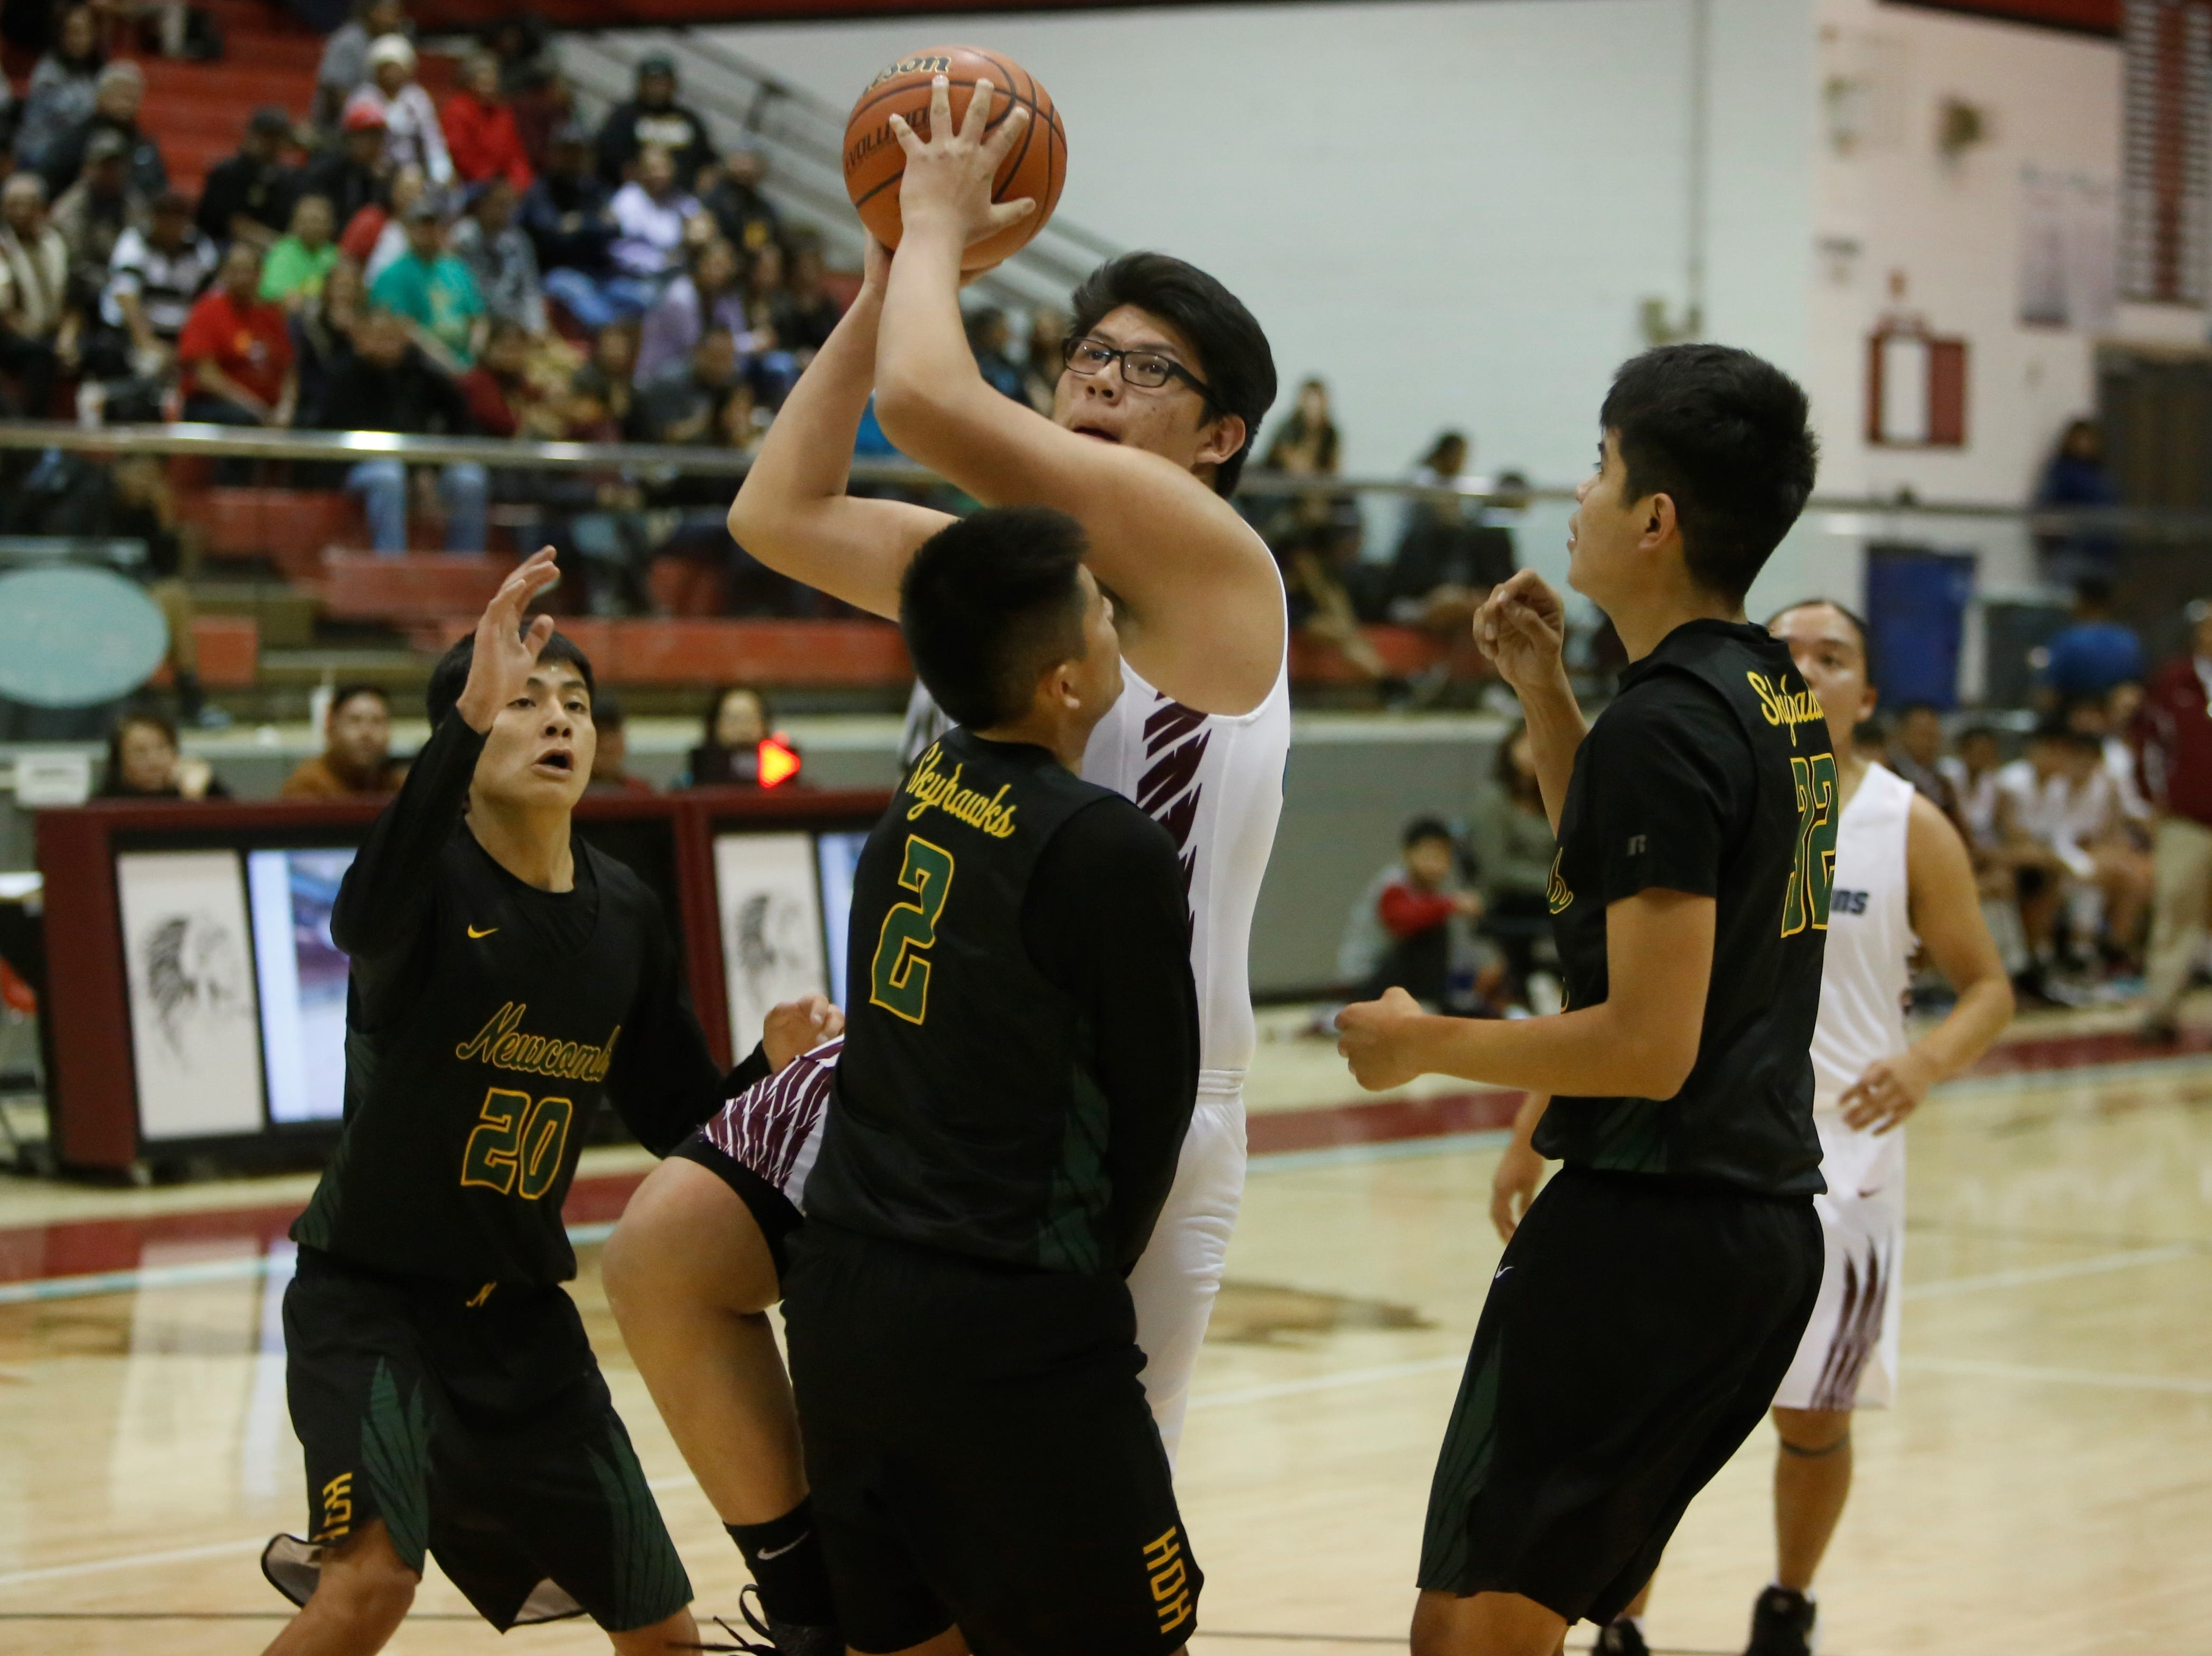 Shiprock's Eeyan John bumps into Newcomb's Deion Johnhat (2) driving to the basket for a layup during Thursday's game at the Chieftain Pit in Shiprock.